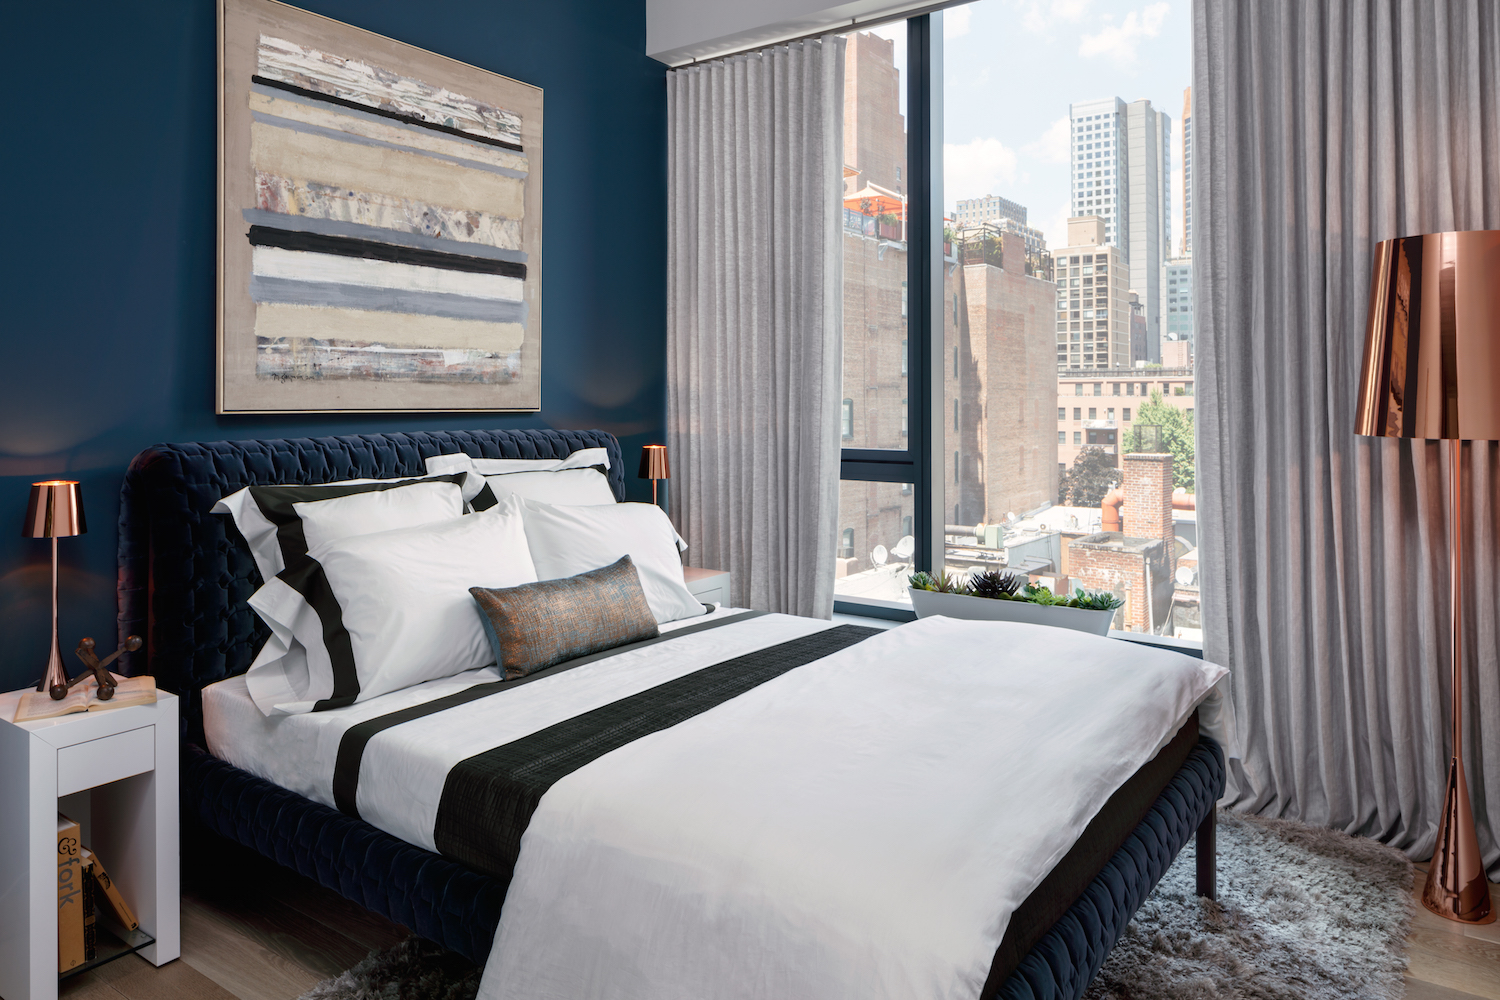 Second bedroom in the model unit at 90 Lexington Avenue. photo via HFZ Capital